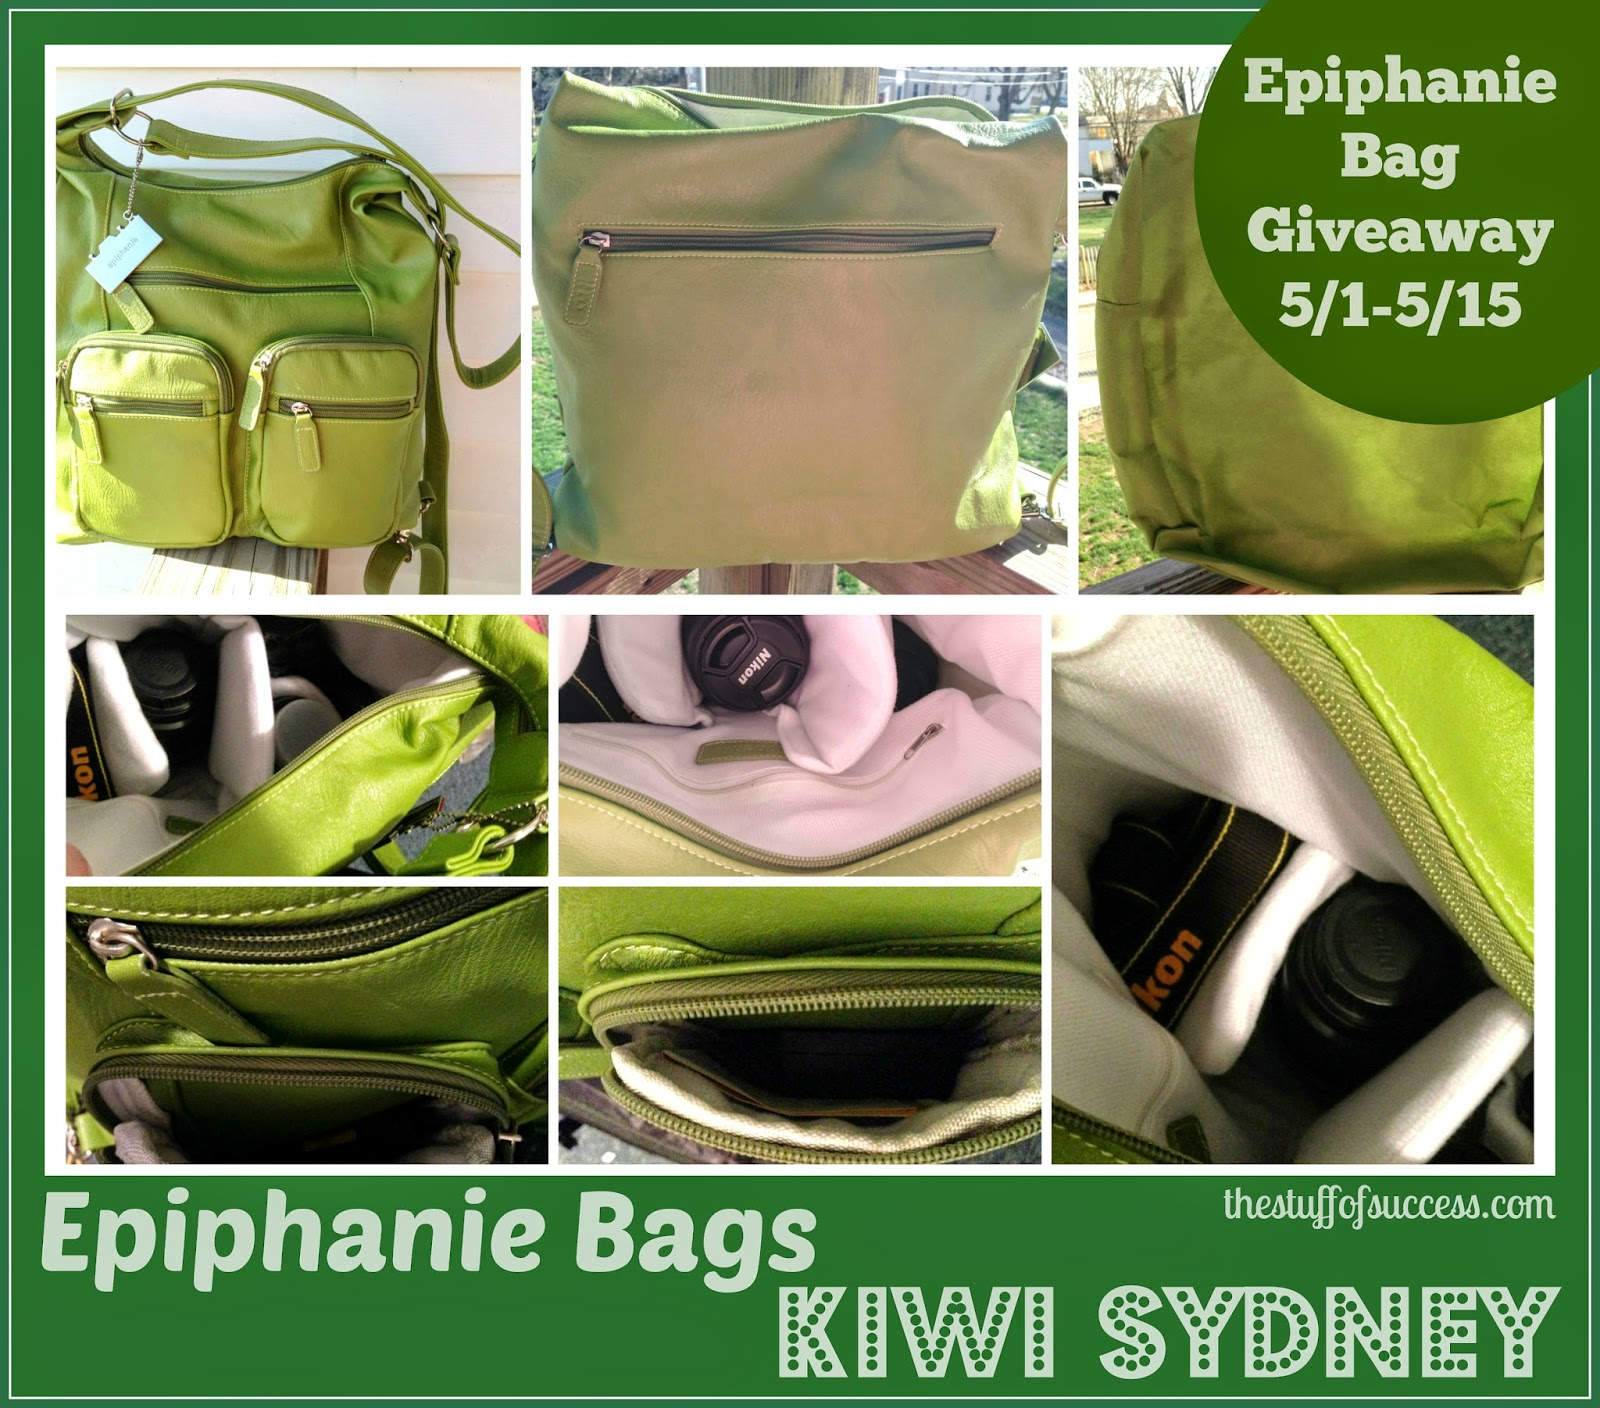 Enter the Epiphanie Bags Winner's Choice Giveaway. Ends 5/14